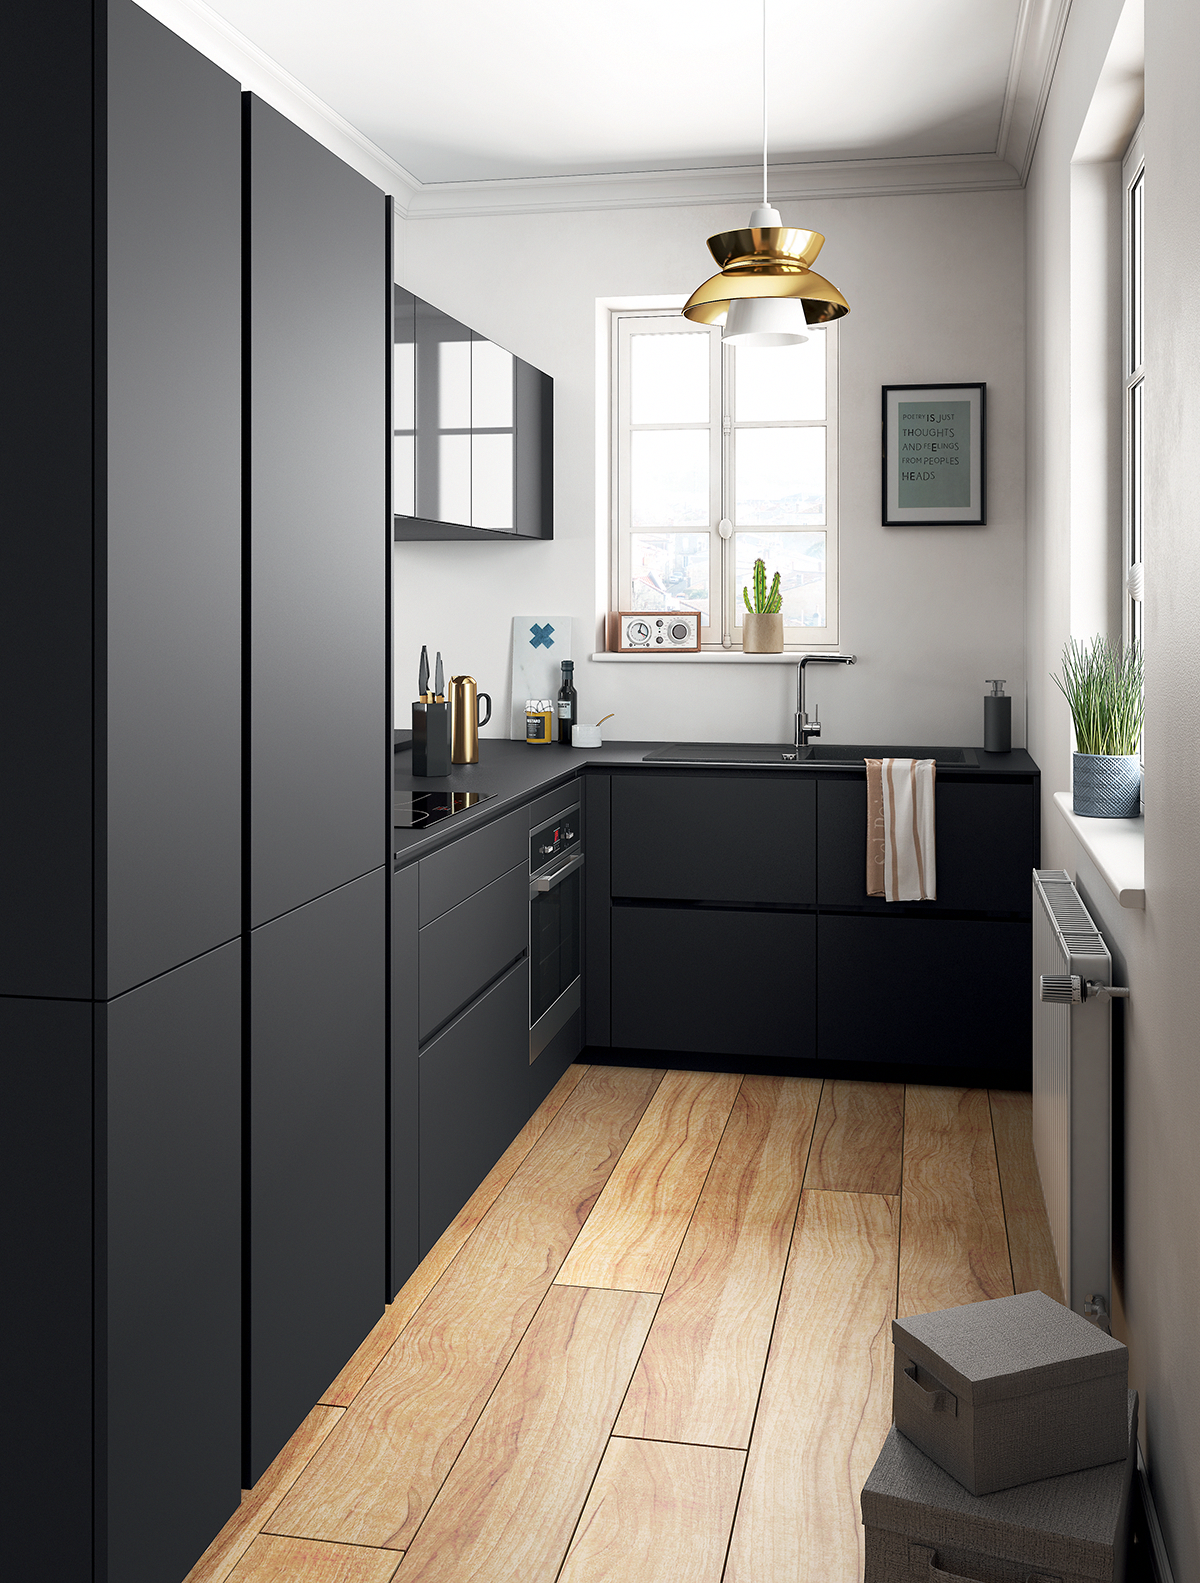 Amazing Black Kitchen Cabinets on Trend For 2018 Black ...